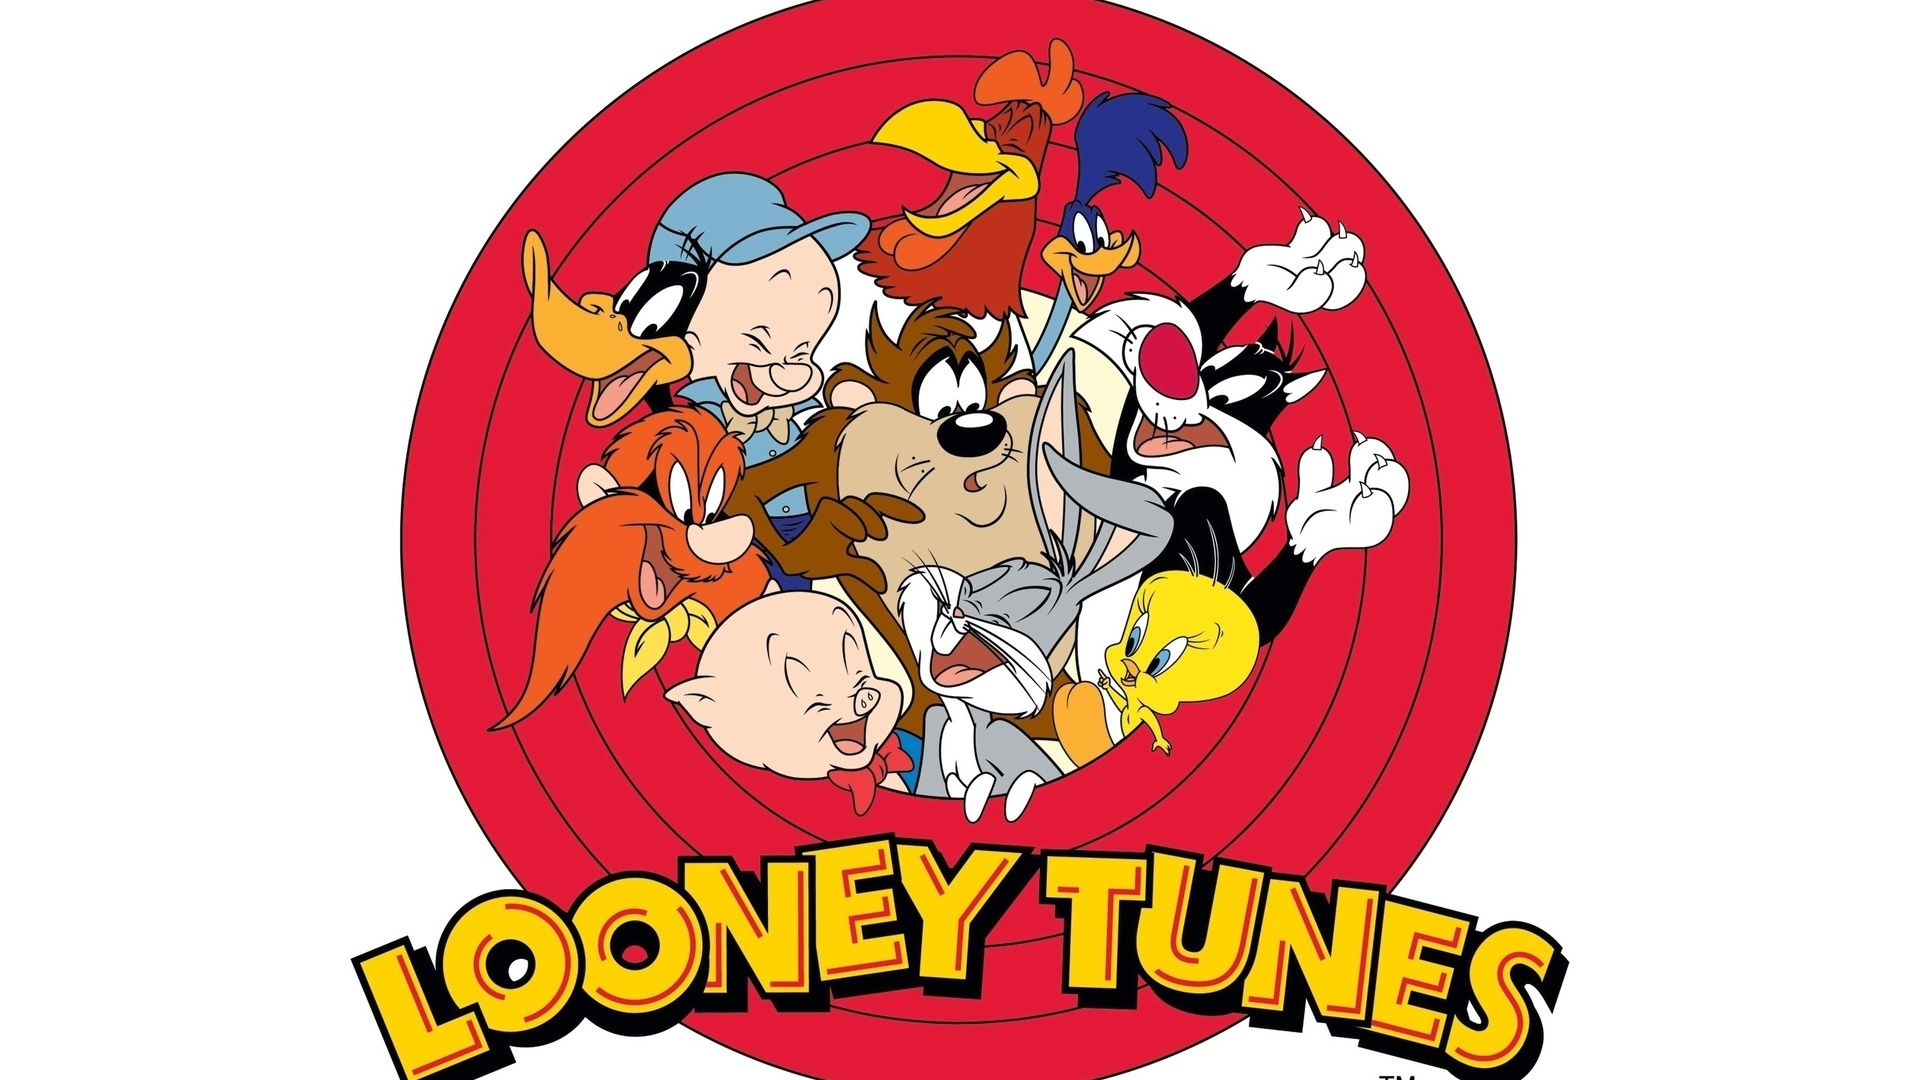 Looney Tunes wallpaper and themes